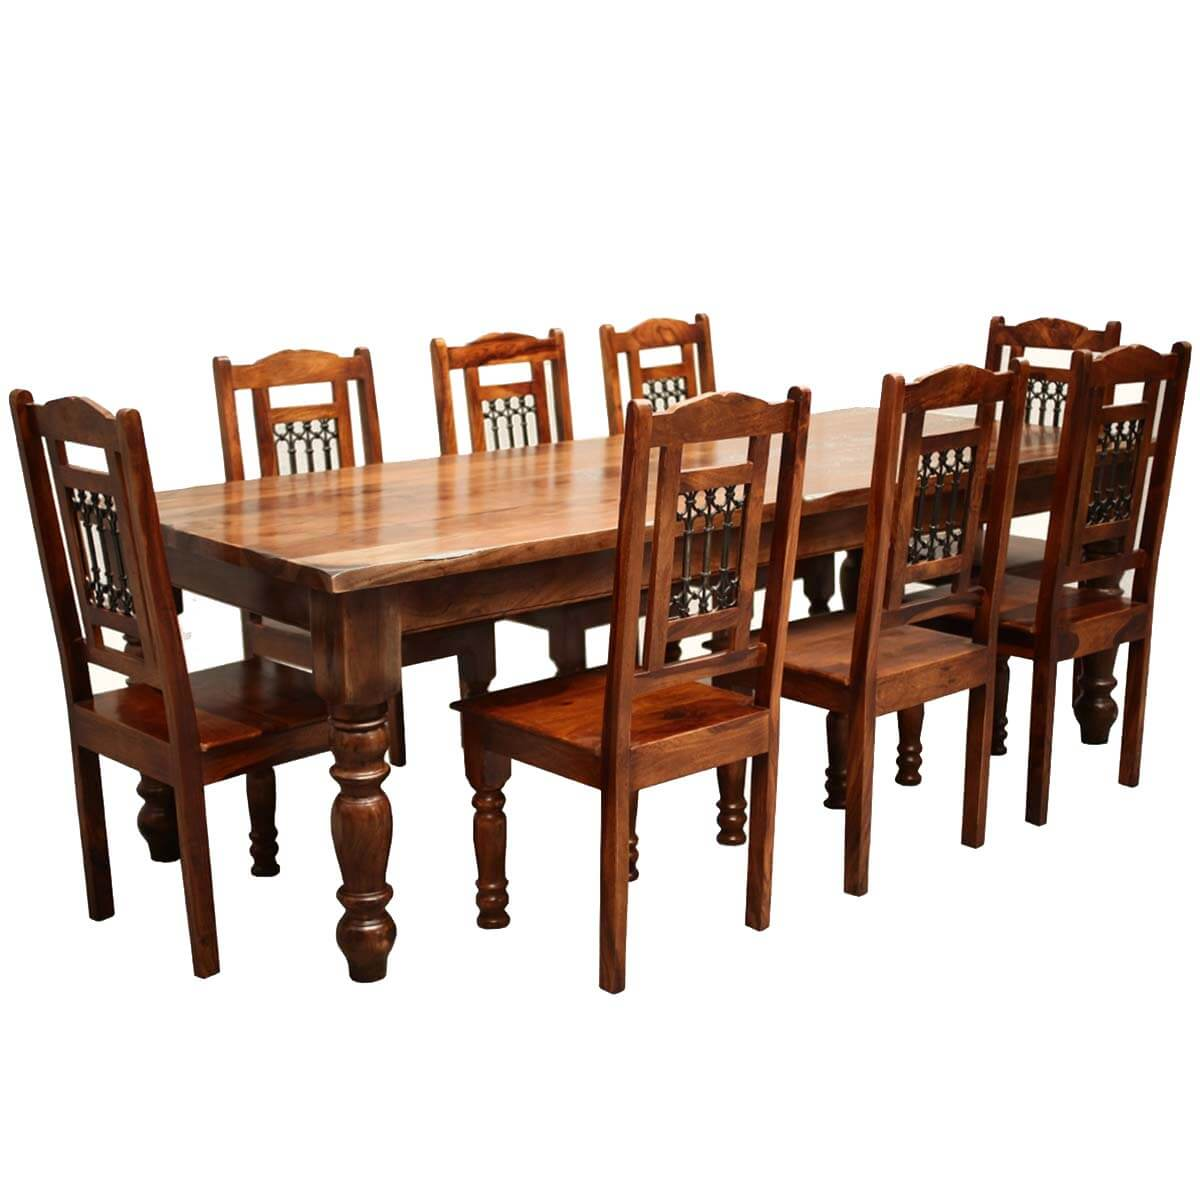 Table And Chair Dining Sets: Rustic Furniture Solid Wood Large Dining Table & 8 Chair Set